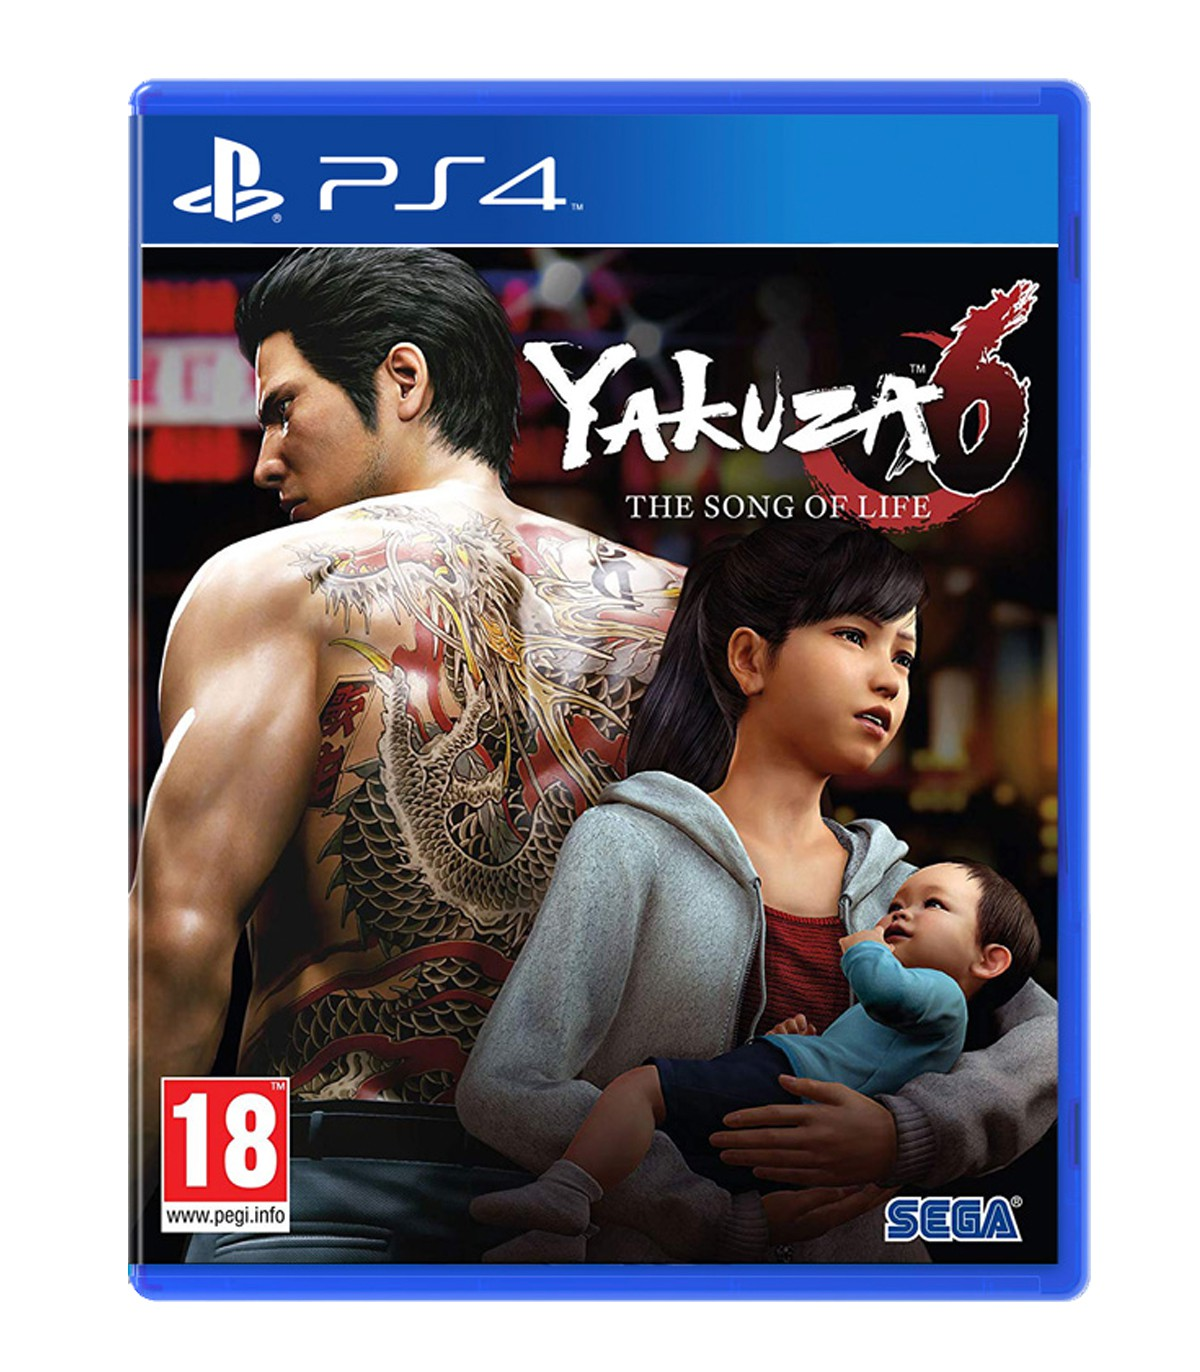 بازی Yakuza 6 The Song of Life - پلی استیشن 4